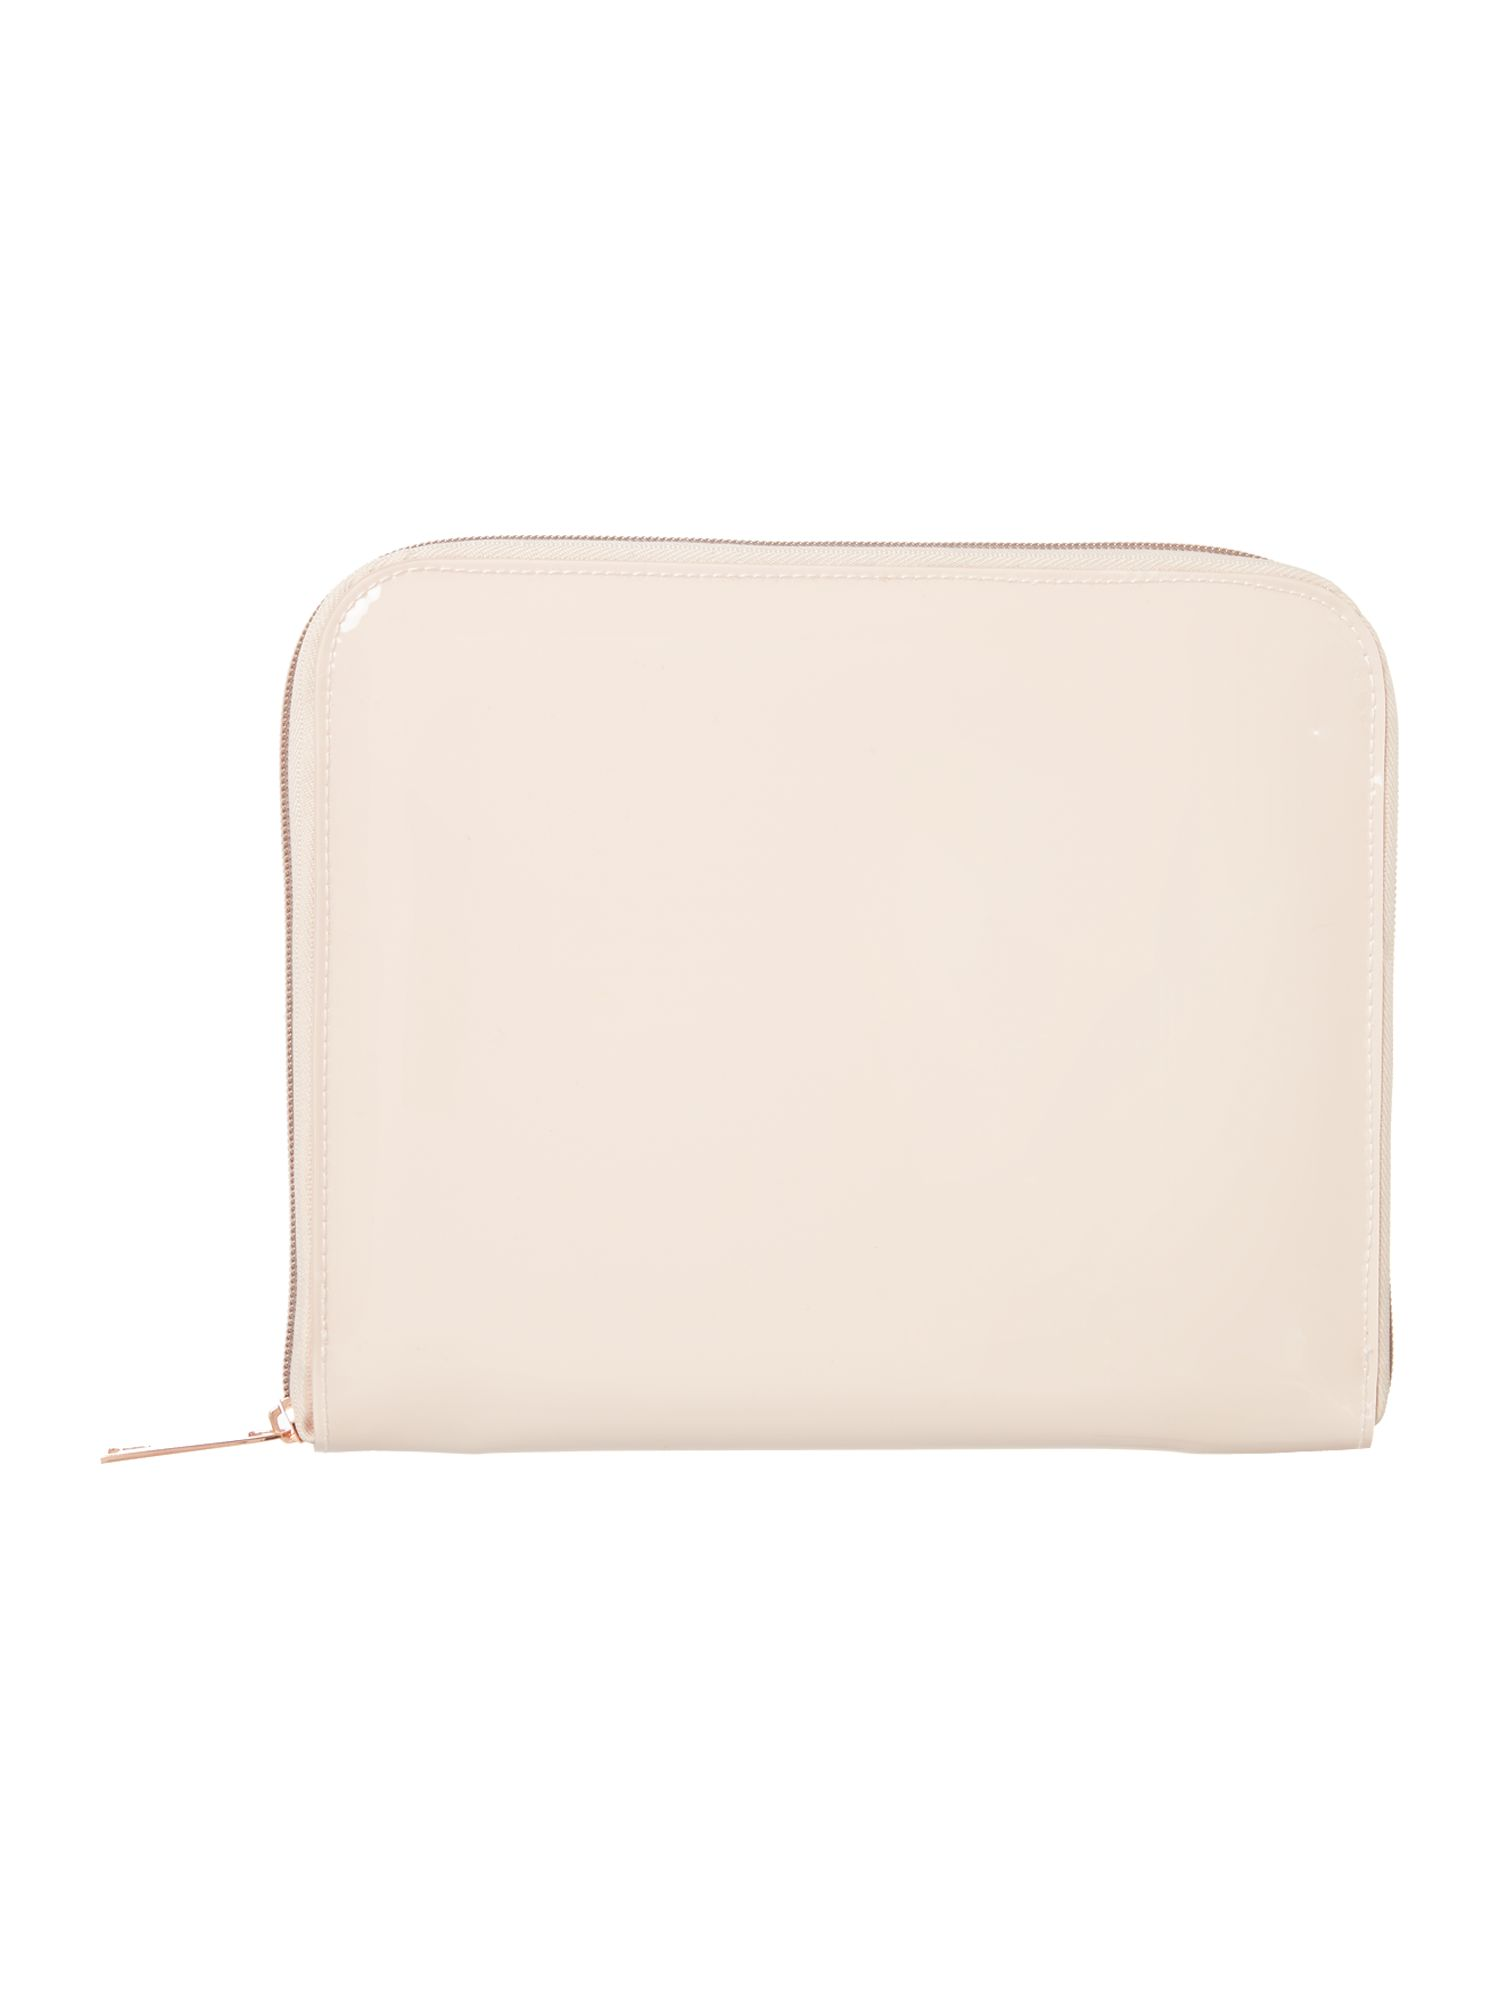 Large nude iPad case